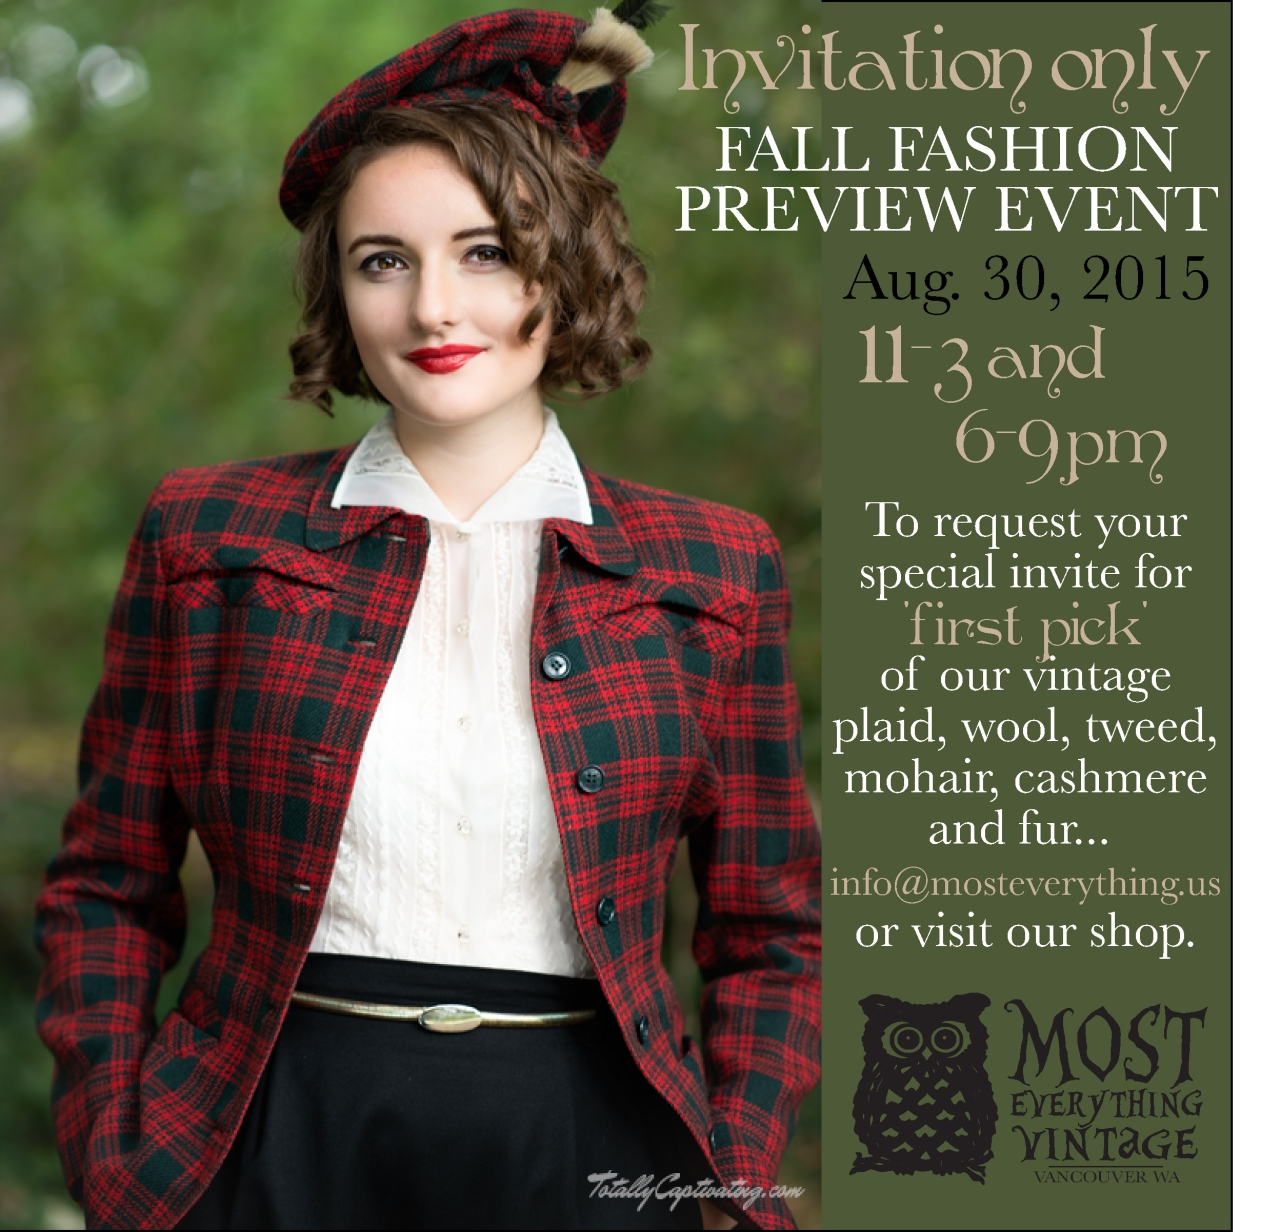 Fall Fashion Preview Event